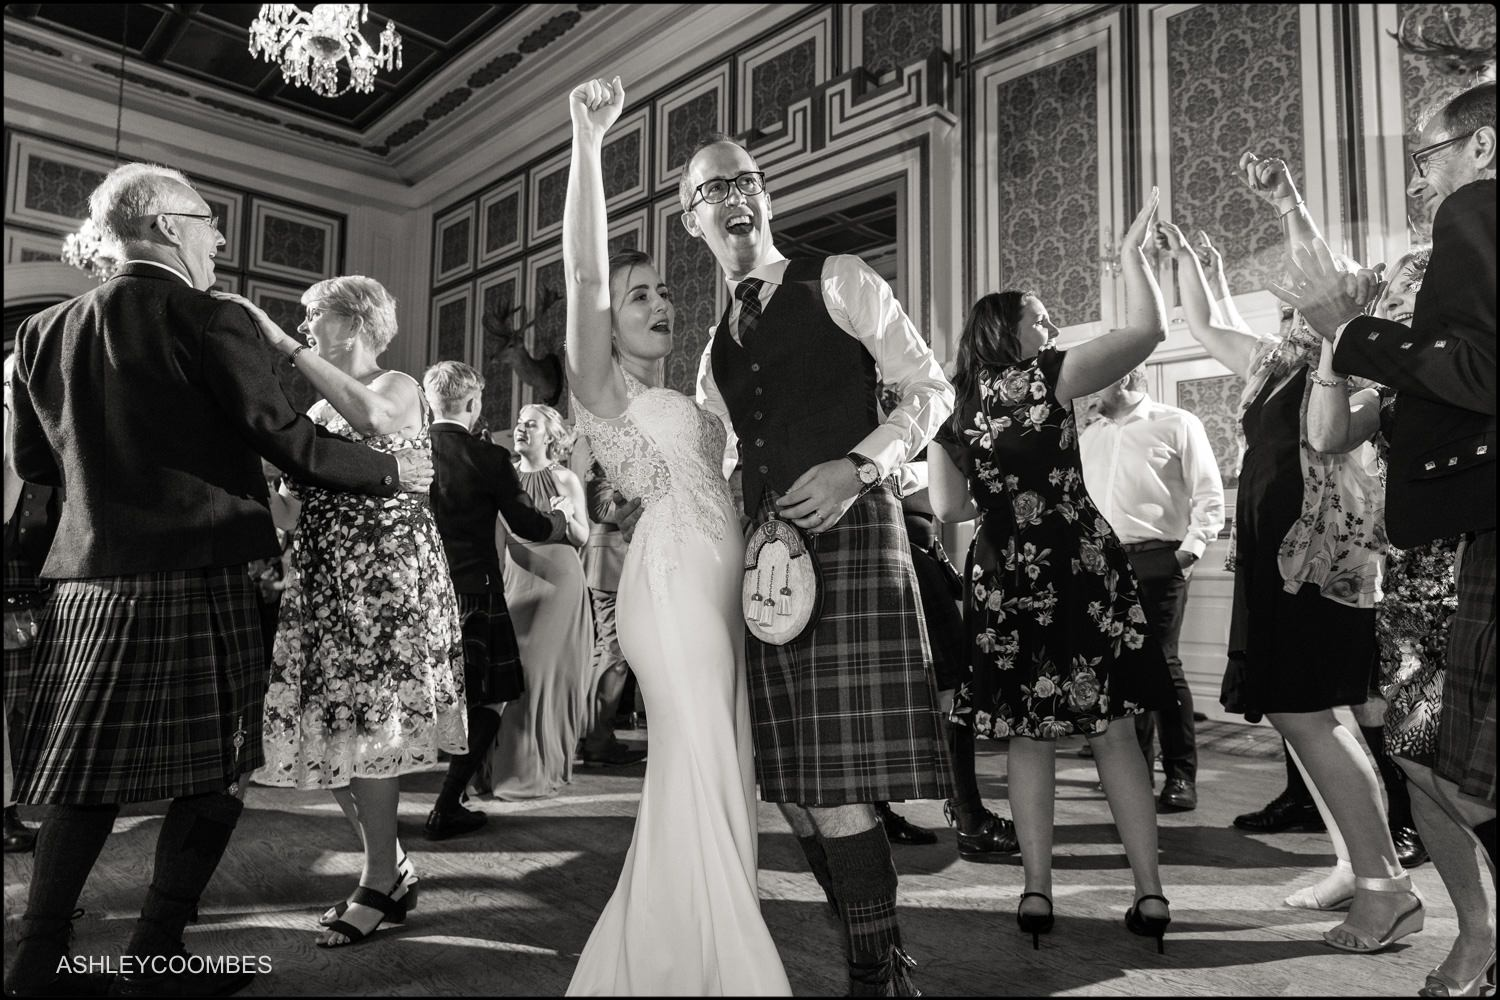 Bride and groom cheering on dance floor